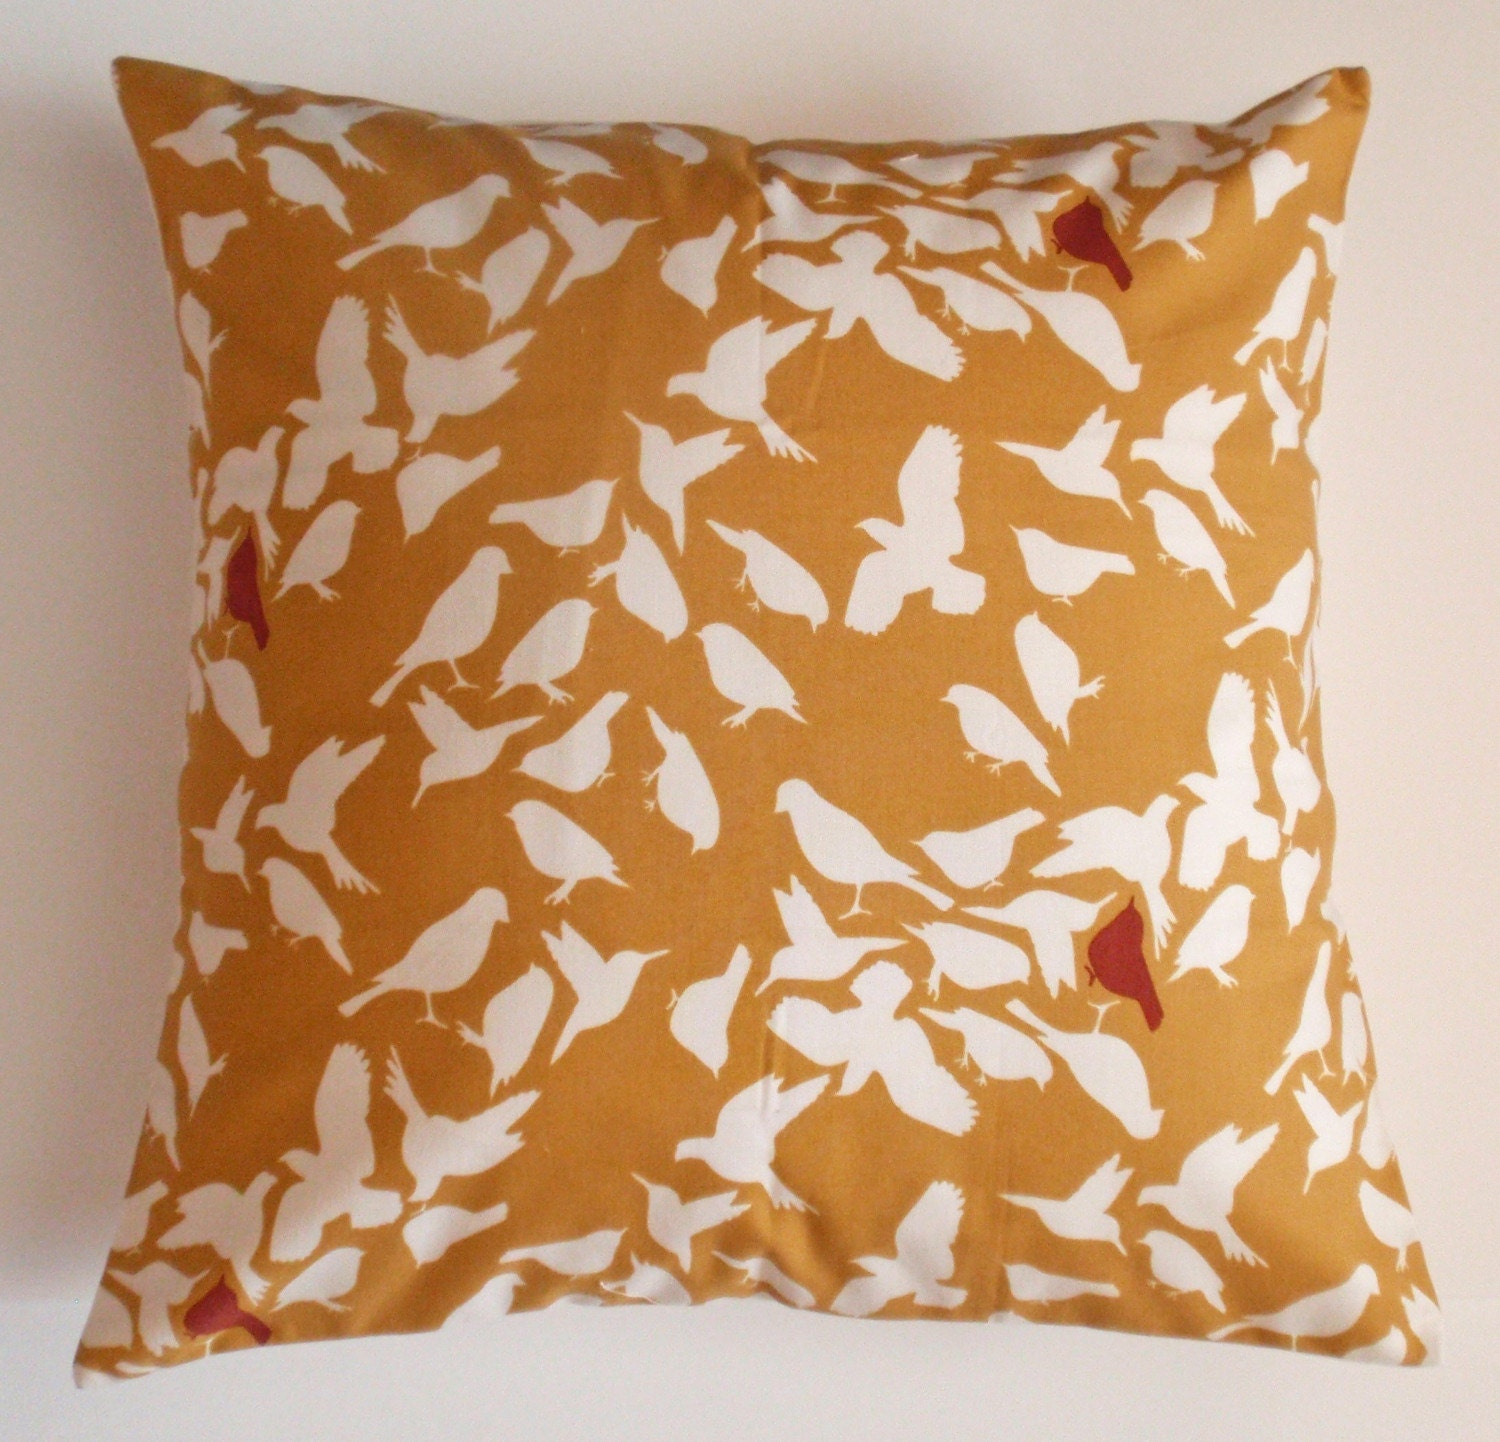 Throw Pillow With Removable Cover : Throw Pillow 16x16 Removable cover sewn with Studio e